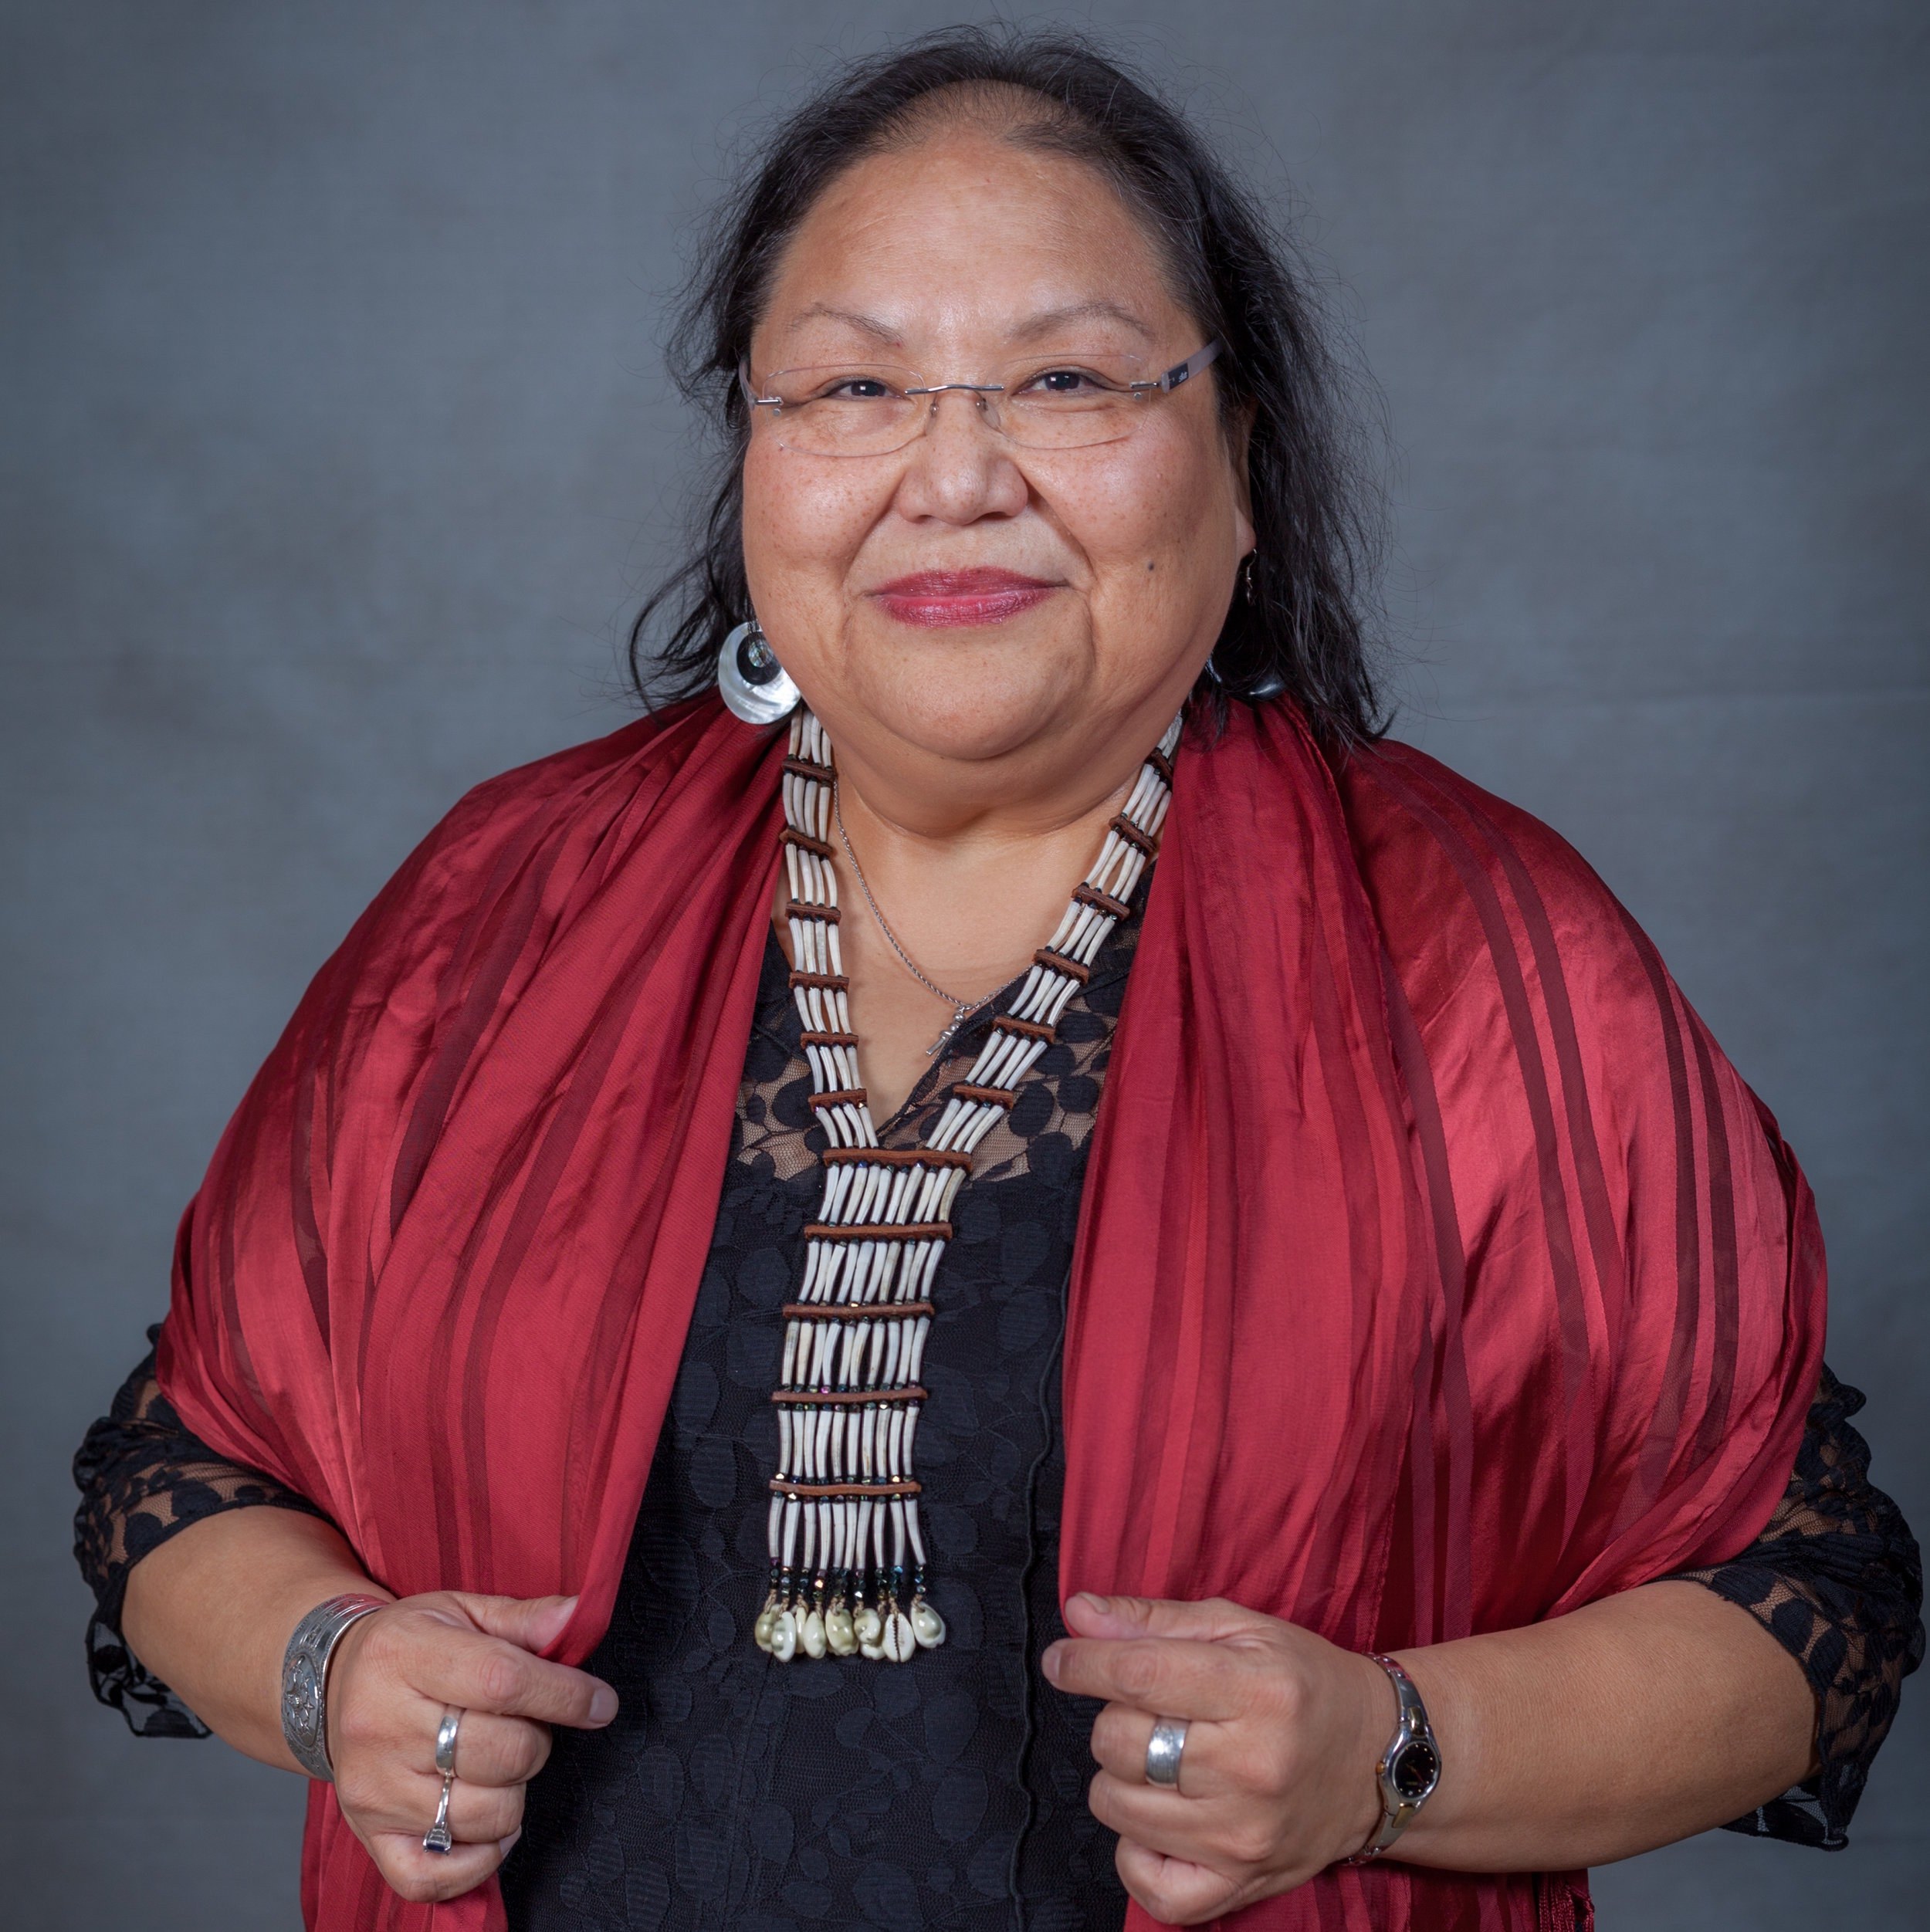 """Elizabeth Woody   Elizabeth Woody is an enrolled member of the Confederated Tribes of Warm Springs, Oregon, of Yakama Nation descent, and is """"born for"""" the Tódích'íinii (Bitter Water clan) of the Navajo Nation. Her paternal grandfather's clan is Mą'ii deeshgiizhinii (Coyote Pass, Jemez clan). Woody has published three books of poetry and also writes short fiction, essays and is a visual artist. She has been the recipient of the American Book Award and the William Stafford Memorial Award for Poetry, was a finalist for the Oregon Book Awards in 1995 and is currently Poet Laureate of Oregon. Woody is alumna of the first Kellogg Foundation's Fellowship through AIO's Ambassadors program and she leads writing workshops, lectures and has served on multidisciplinary art fellowship jury panels for several foundations and arts organizations nationally. Woody is presently on the Board of Directors of Soapstone and Willamette University Advisory Council for Native Programs."""